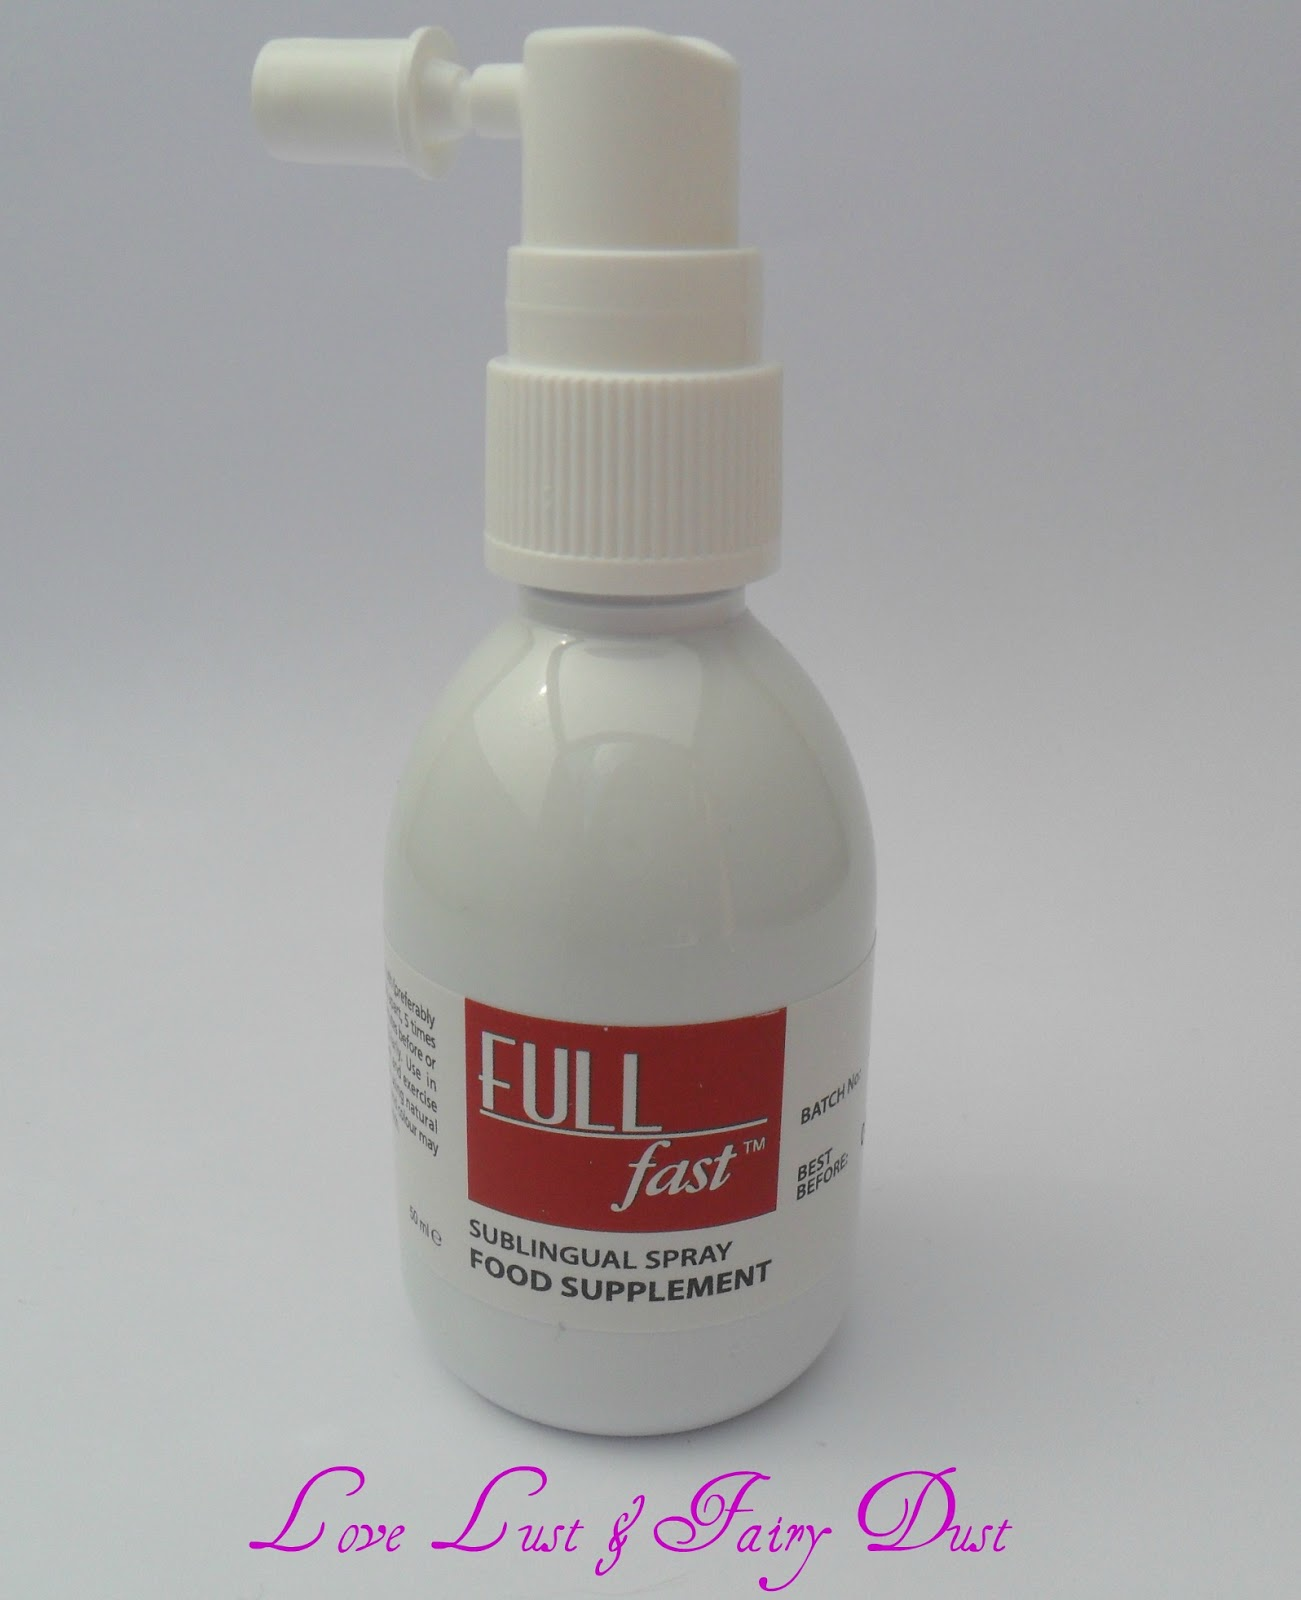 FULLfast natural appetite control